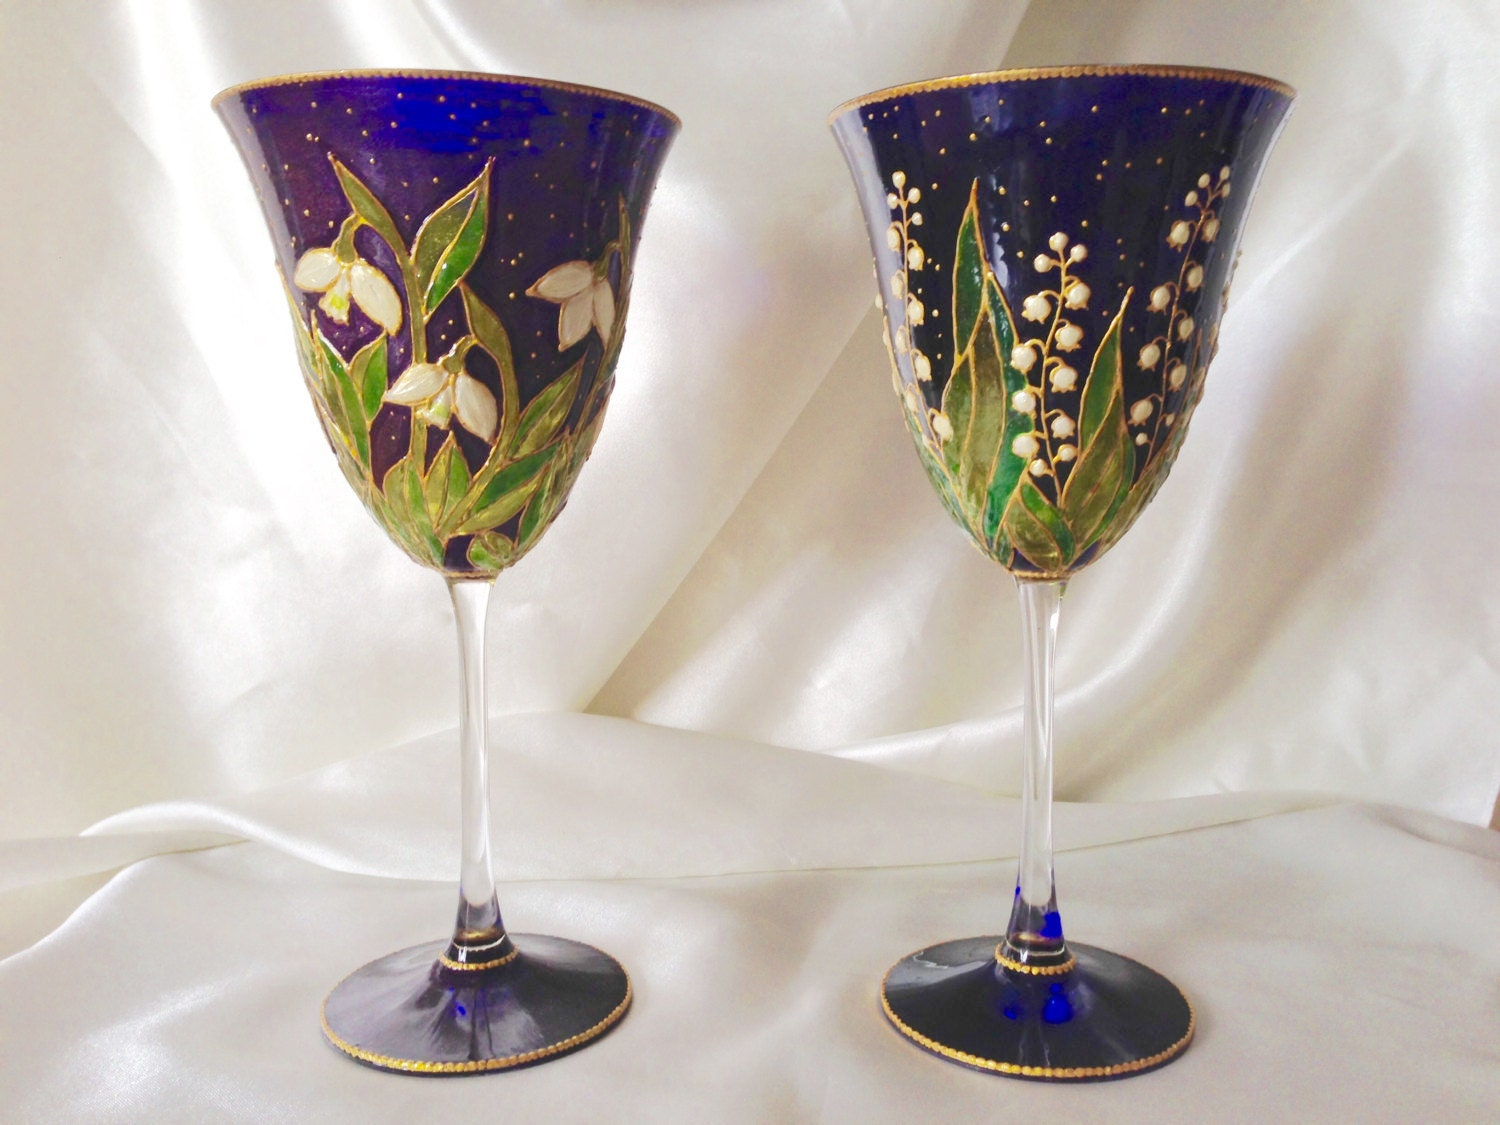 Lili of the Valley and Snowdrop in Midnight Garden Hand Painted Crystal Wine Glasses OOAK Blue Wedding Theme